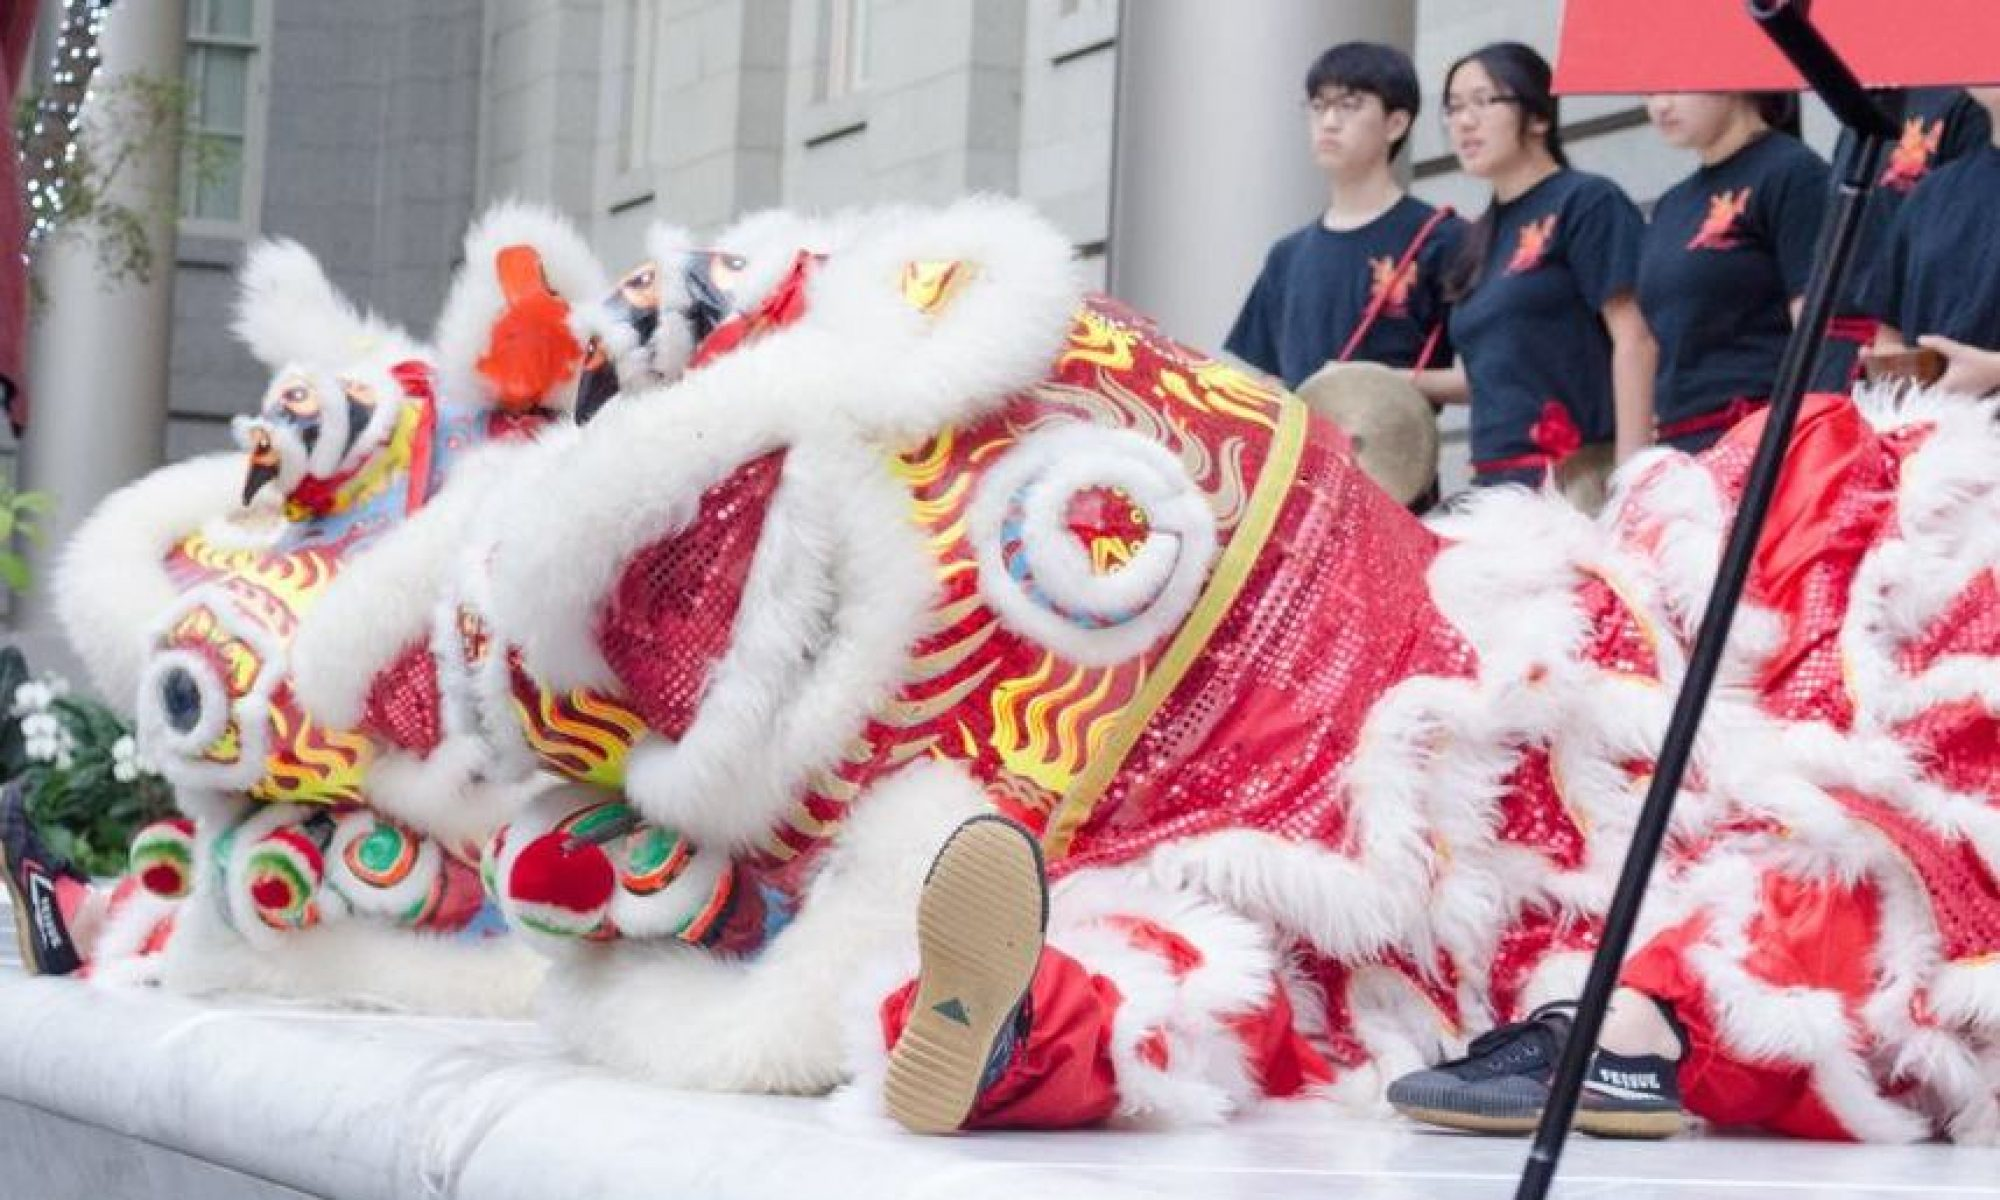 JHU Yong Han Lion Dance Troupe